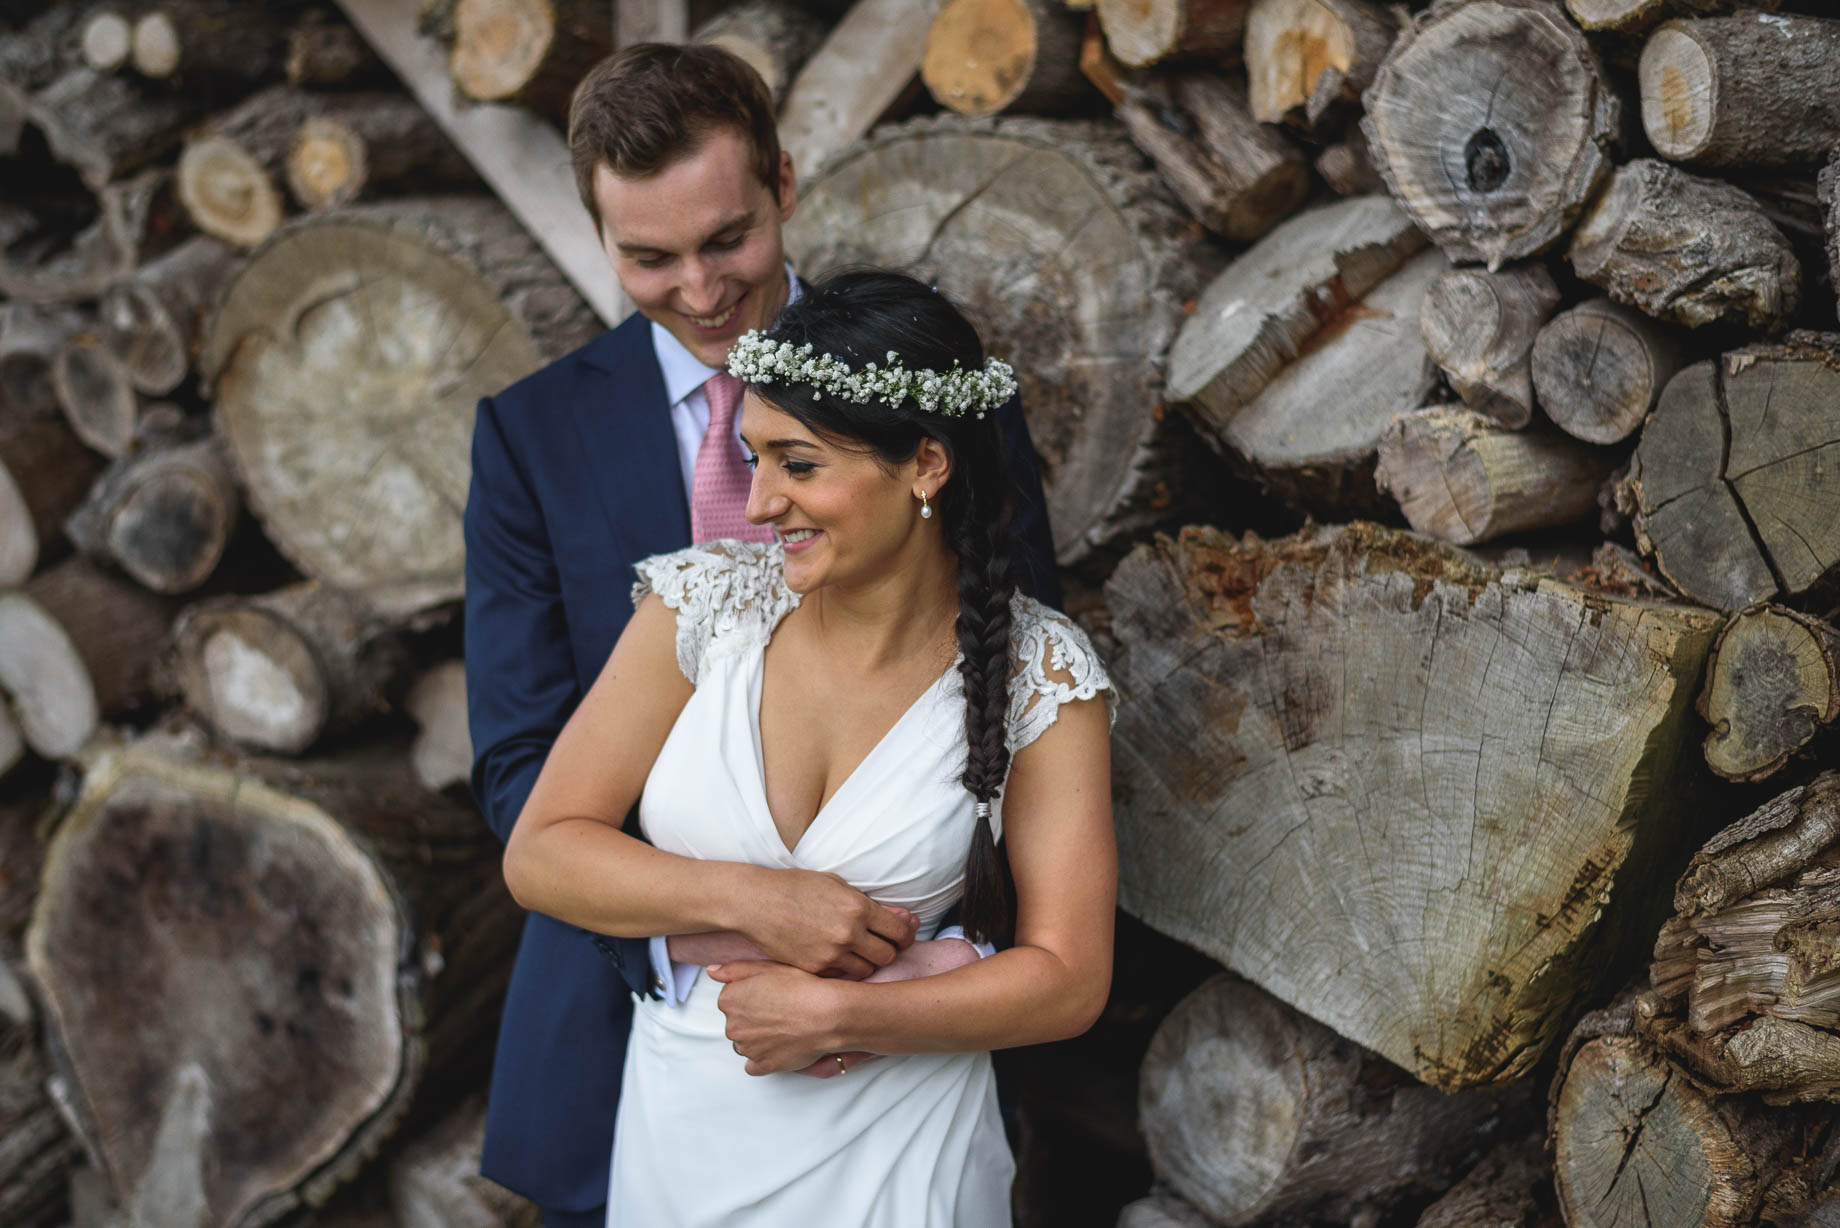 Northbrook Park wedding photography by Guy Collier Photography